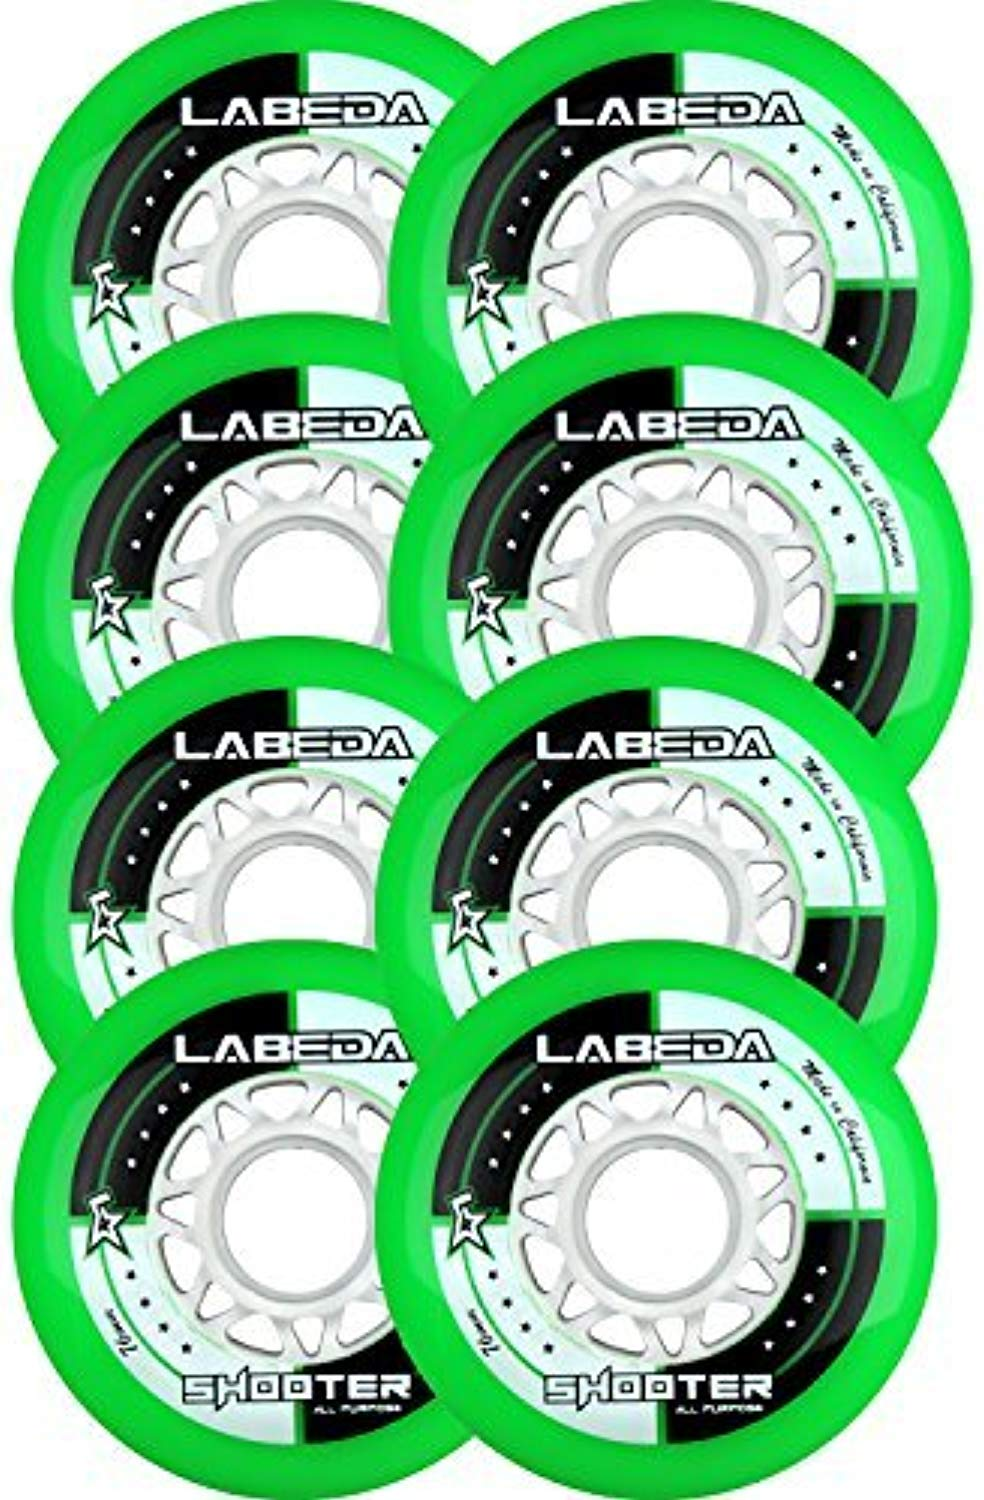 LABEDA ruedaS Inline Roller Hoc ave SHOOTER 76 80 HiLo by Labeda